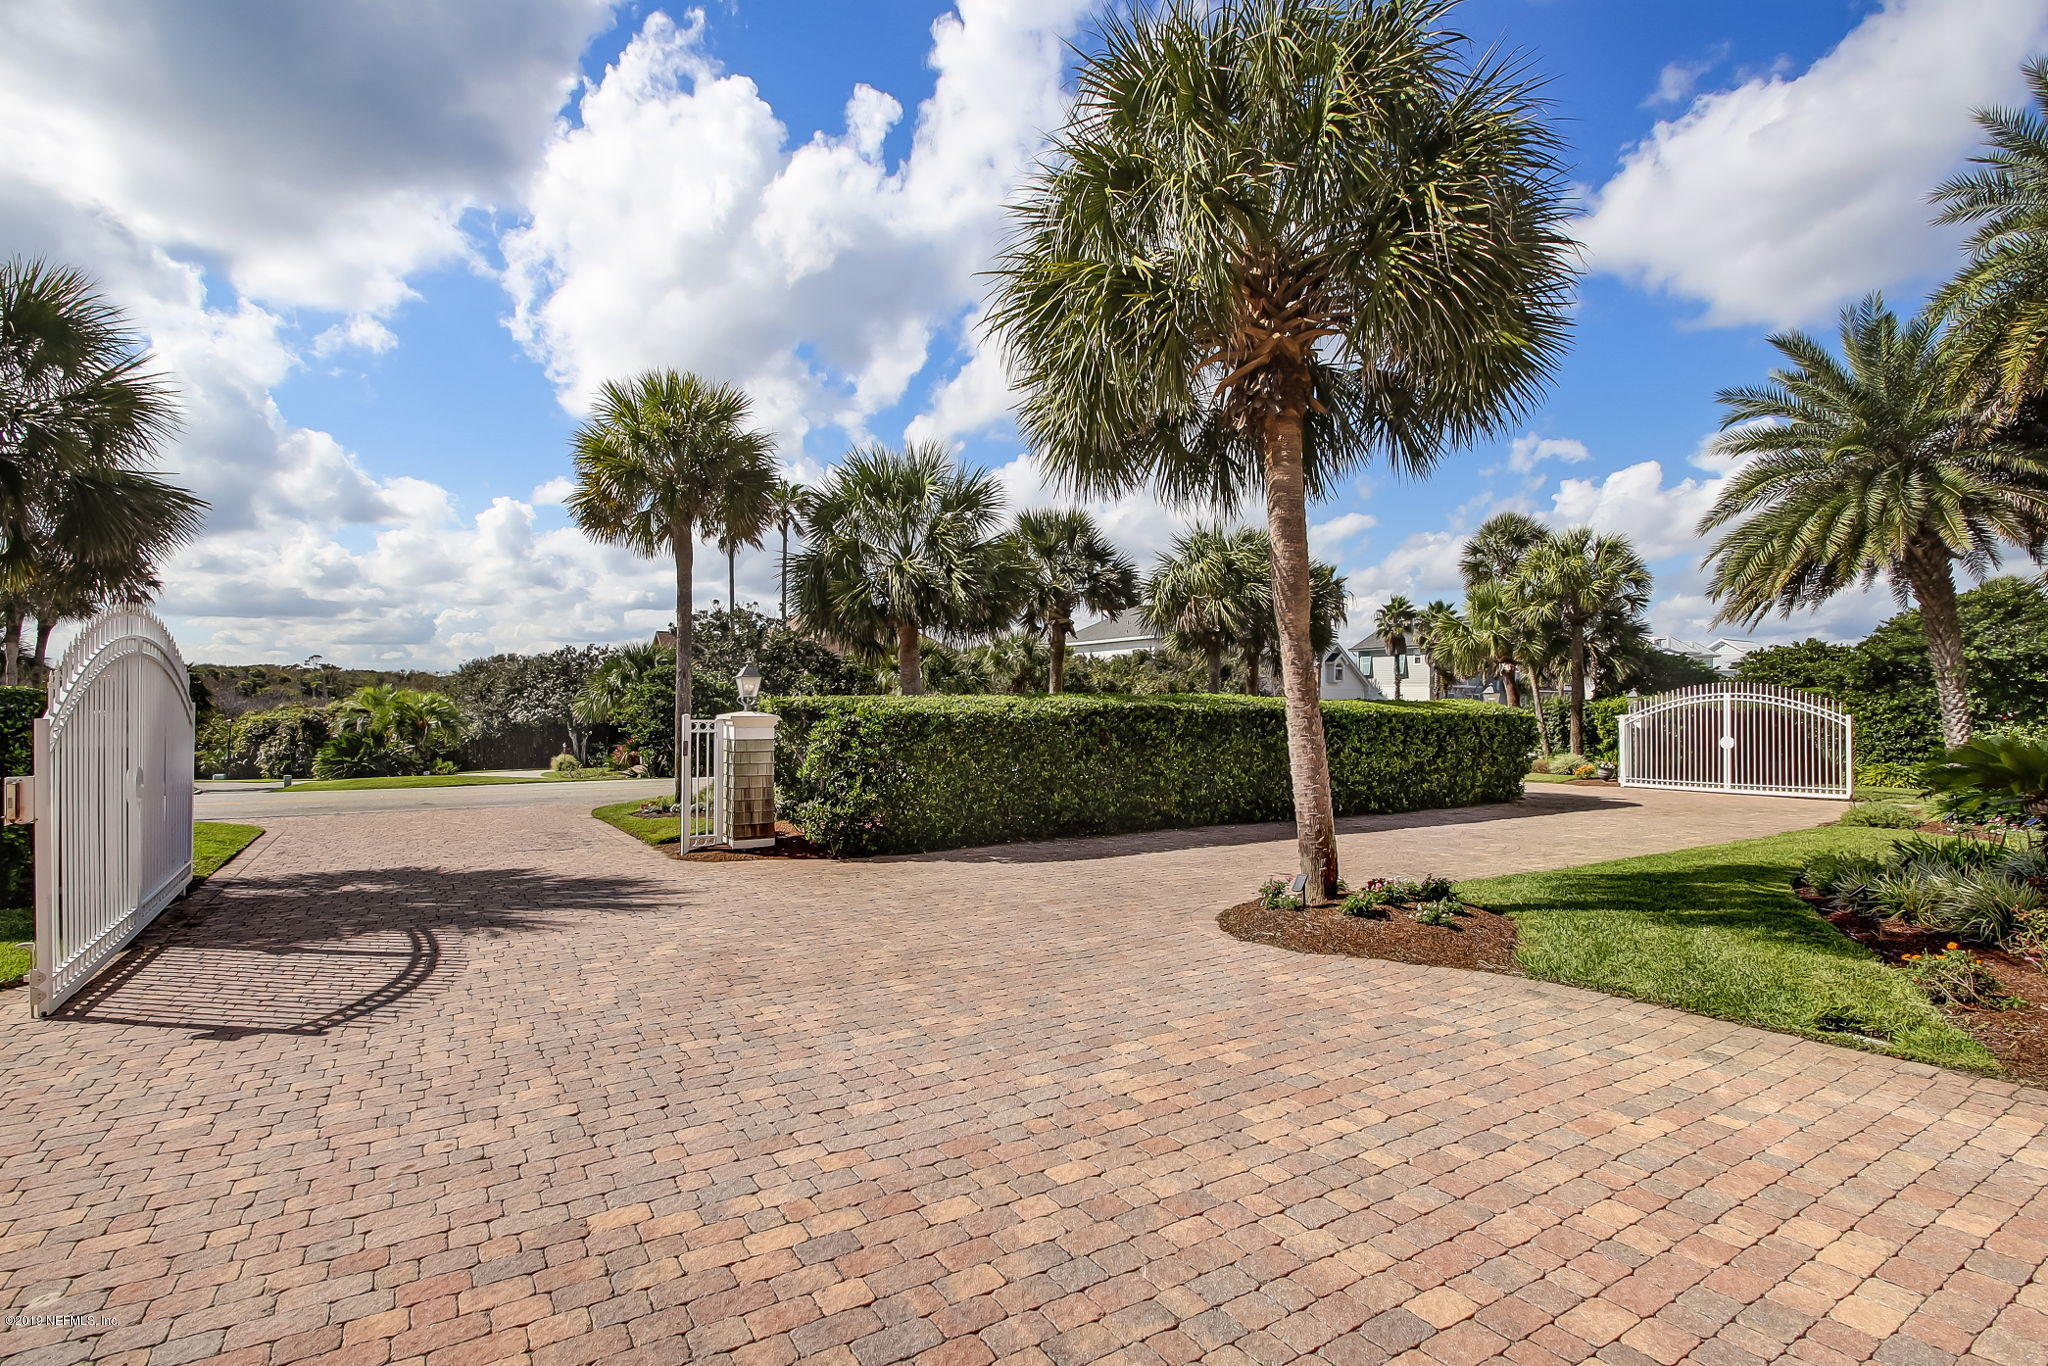 733 PONTE VEDRA, PONTE VEDRA BEACH, FLORIDA 32082, 6 Bedrooms Bedrooms, ,7 BathroomsBathrooms,Residential,For sale,PONTE VEDRA,1024611